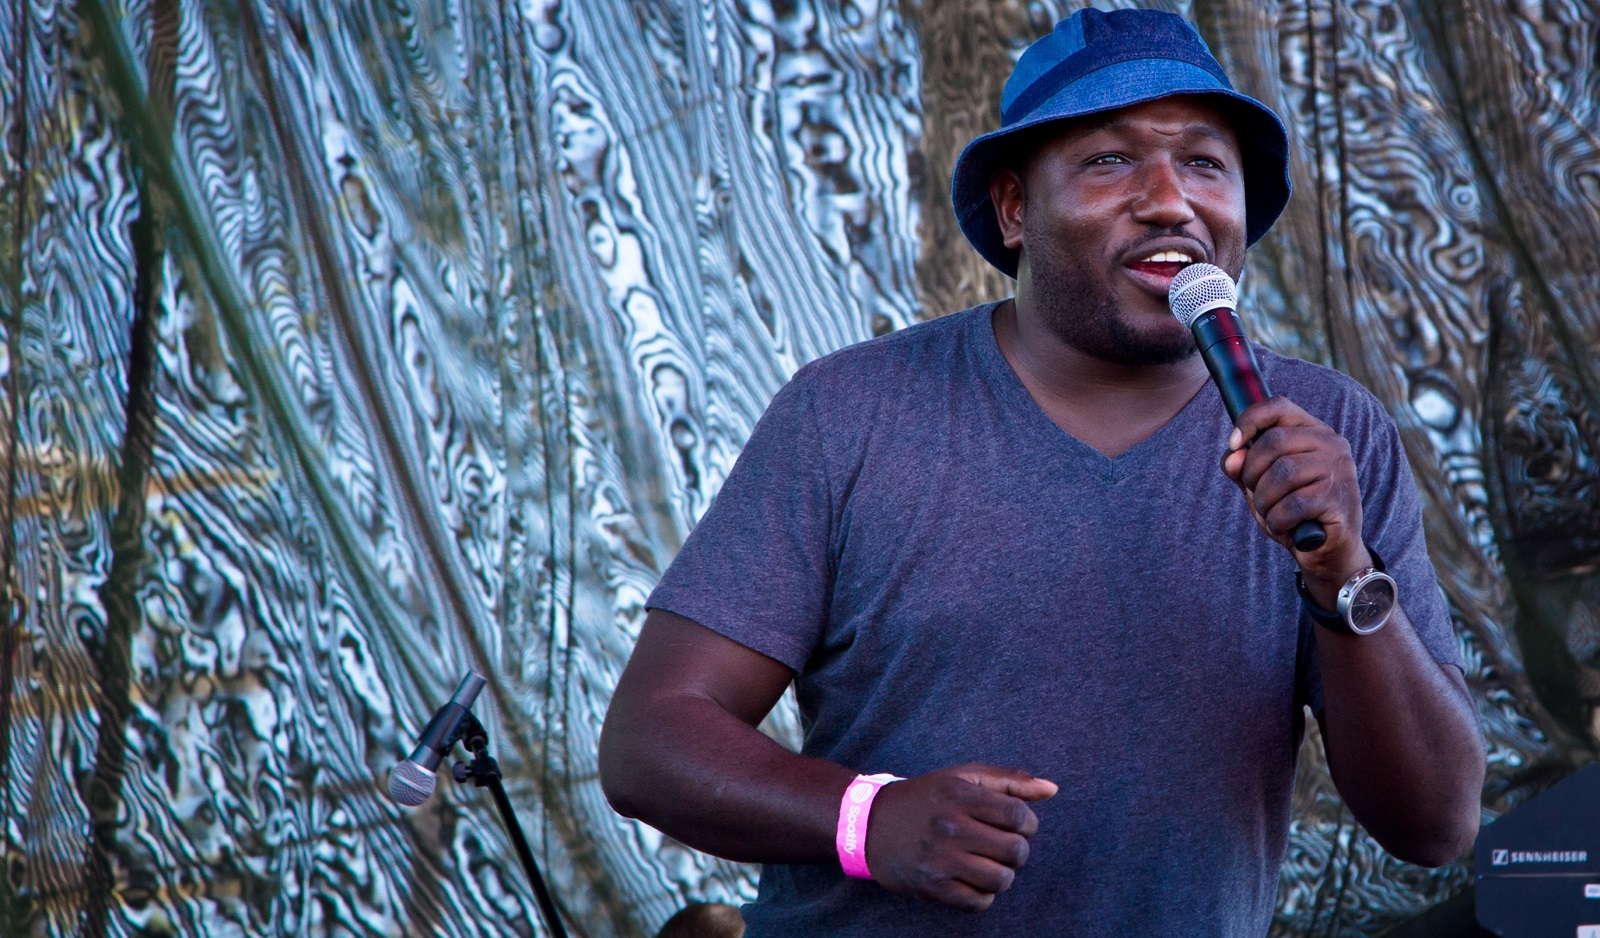 Hannibal Buress will perform a stand-up show April 1 in Waiting Room. (Getty Images)